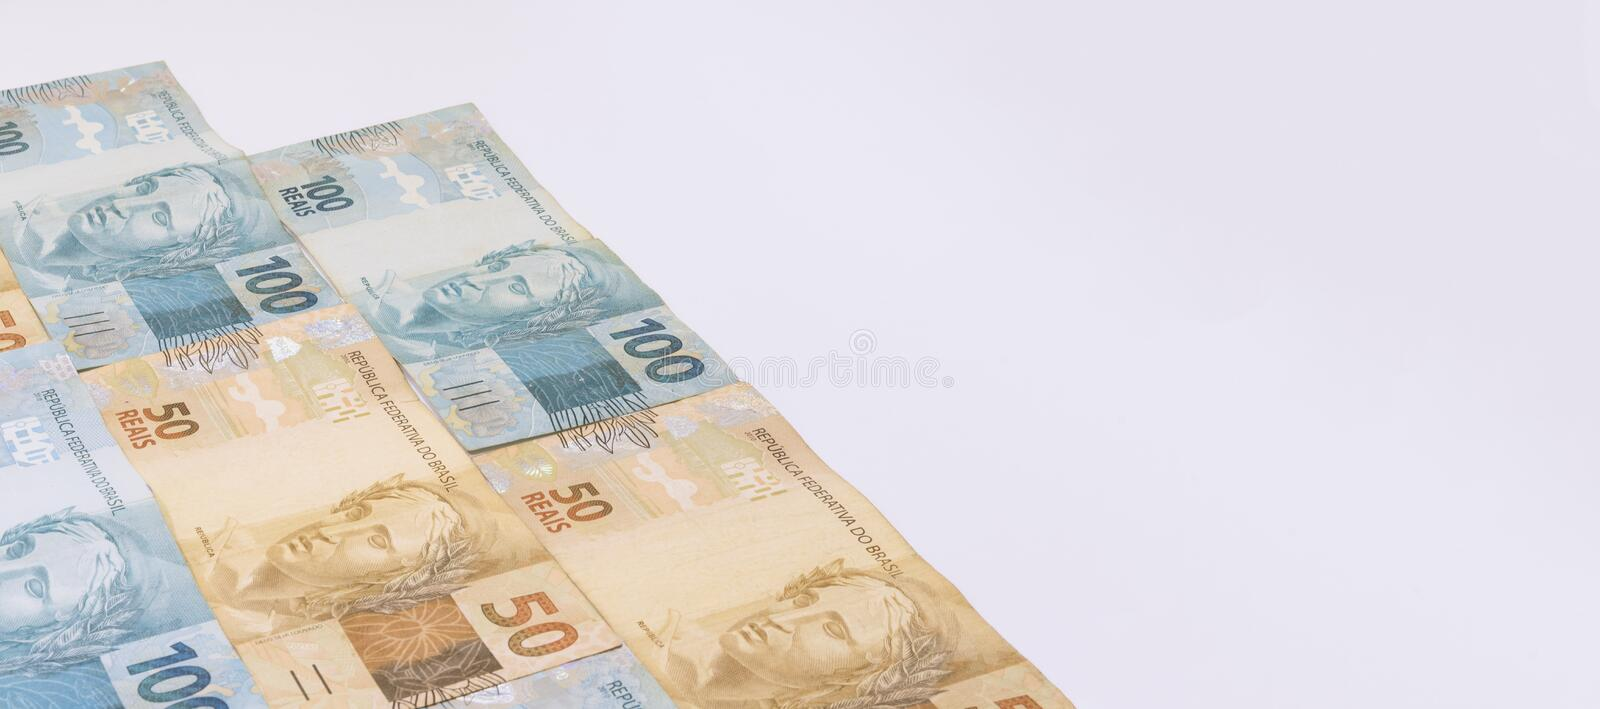 Brazilian money with blank space. Bills called Real, different values. royalty free stock photo